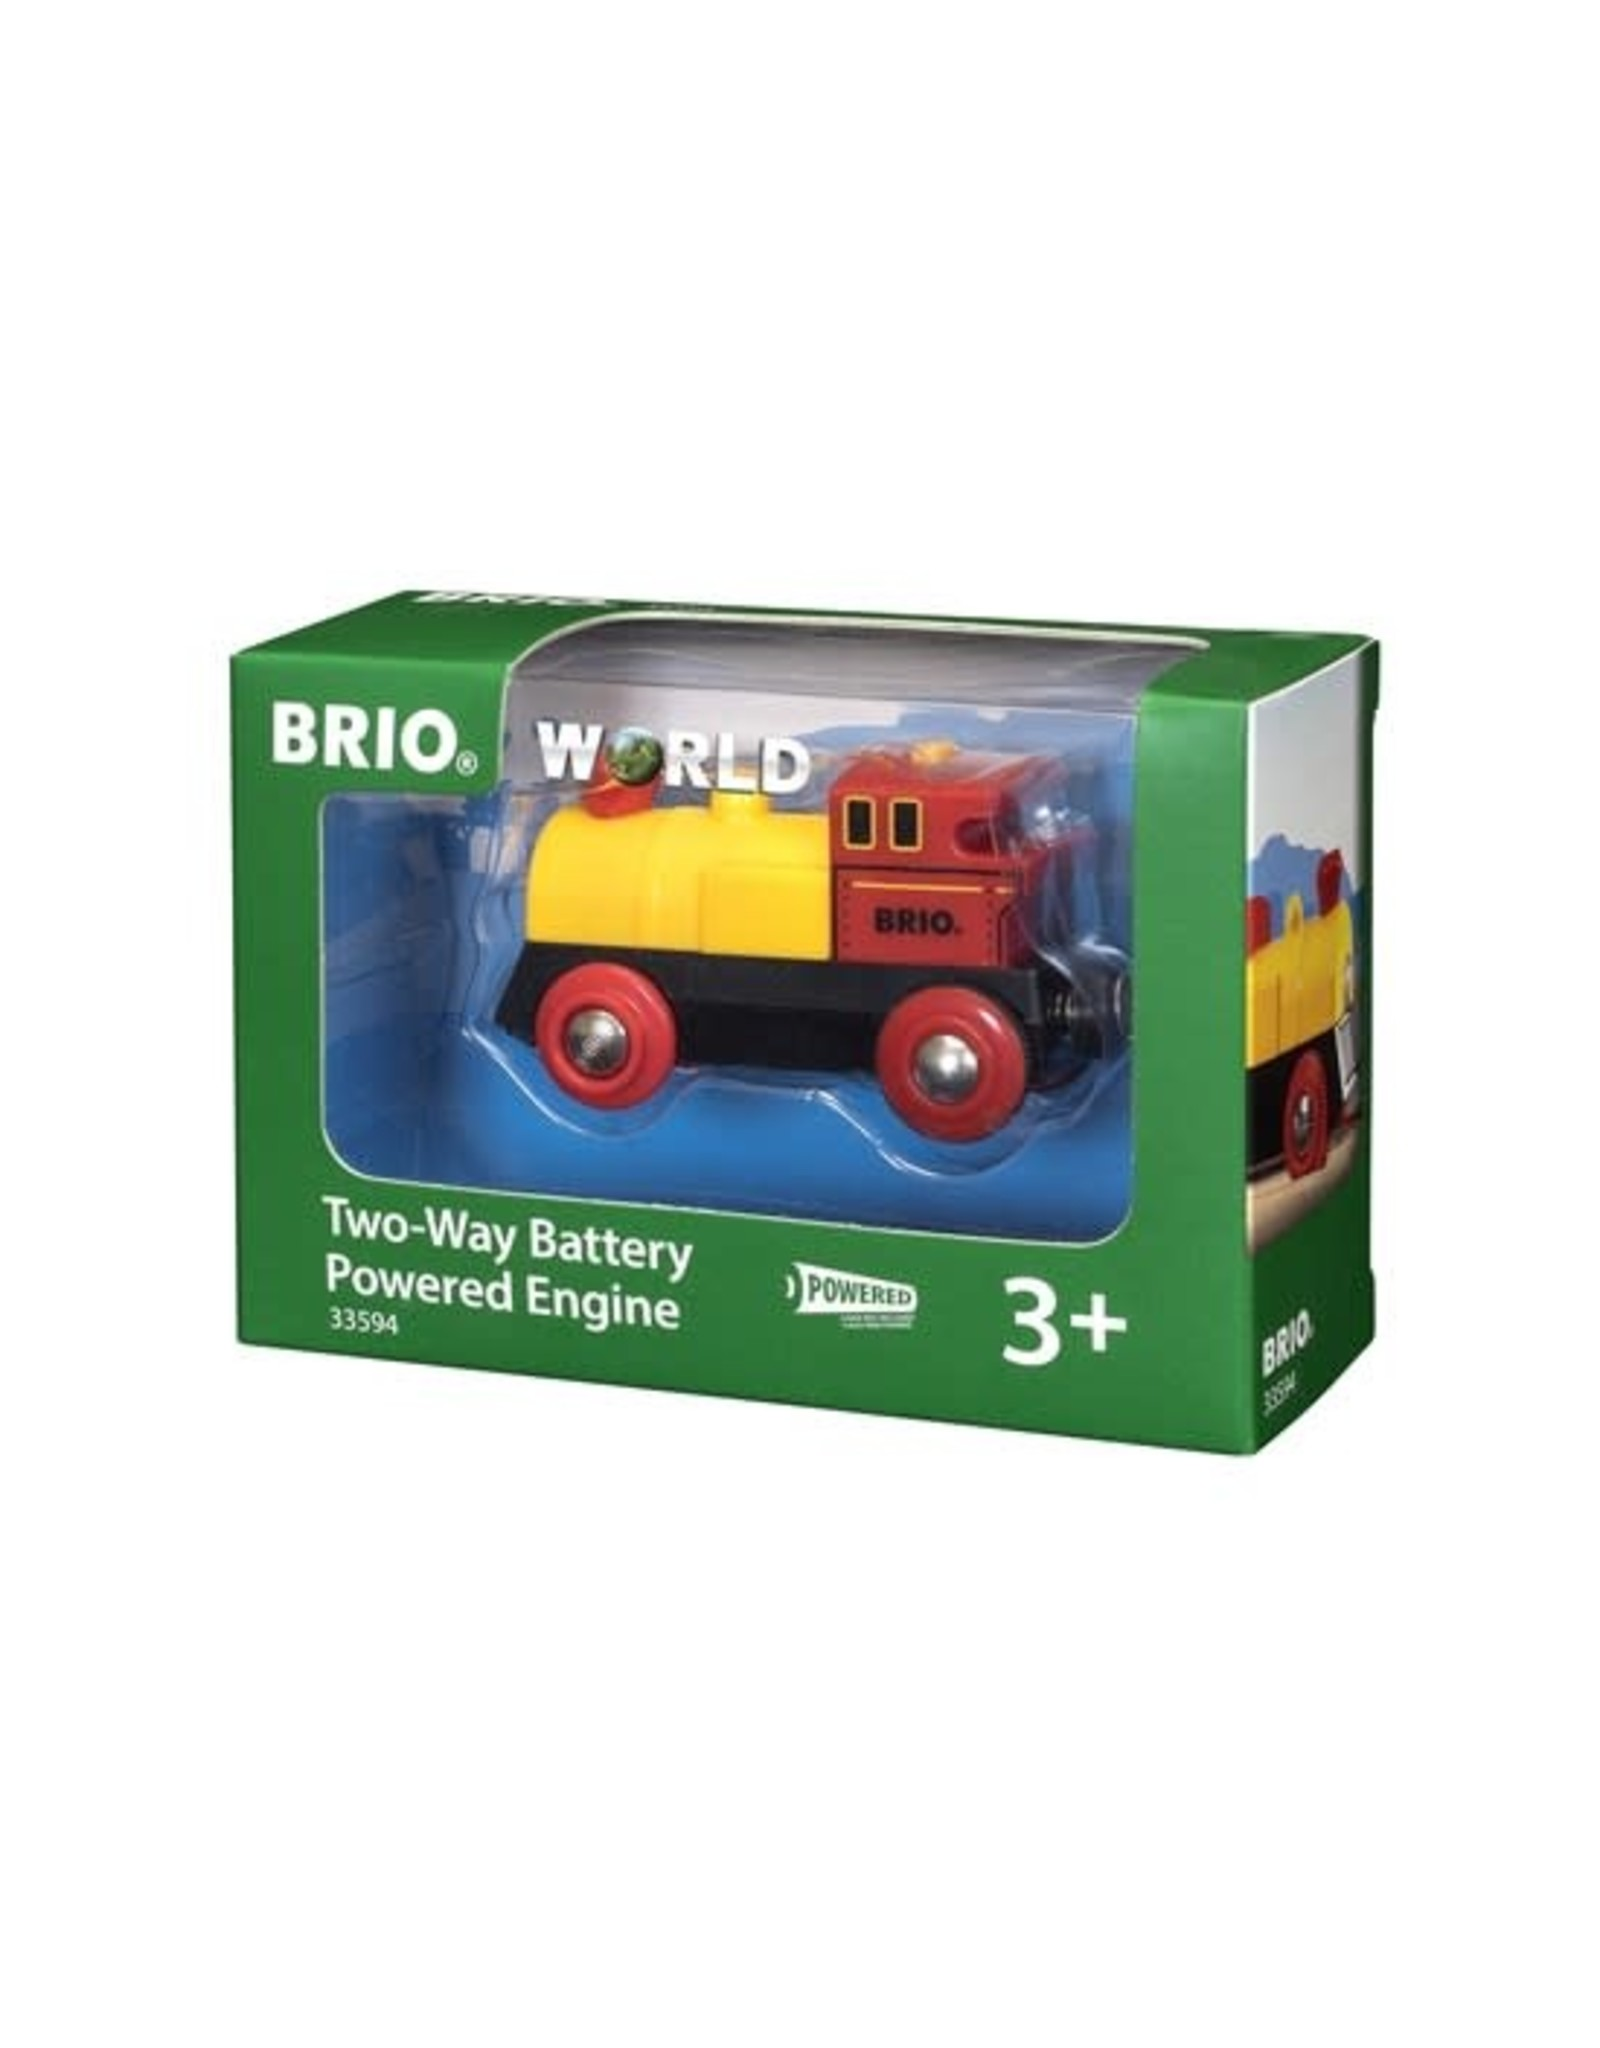 BRIO 33594 TWO WAY BATTERY POWERED ENGINE